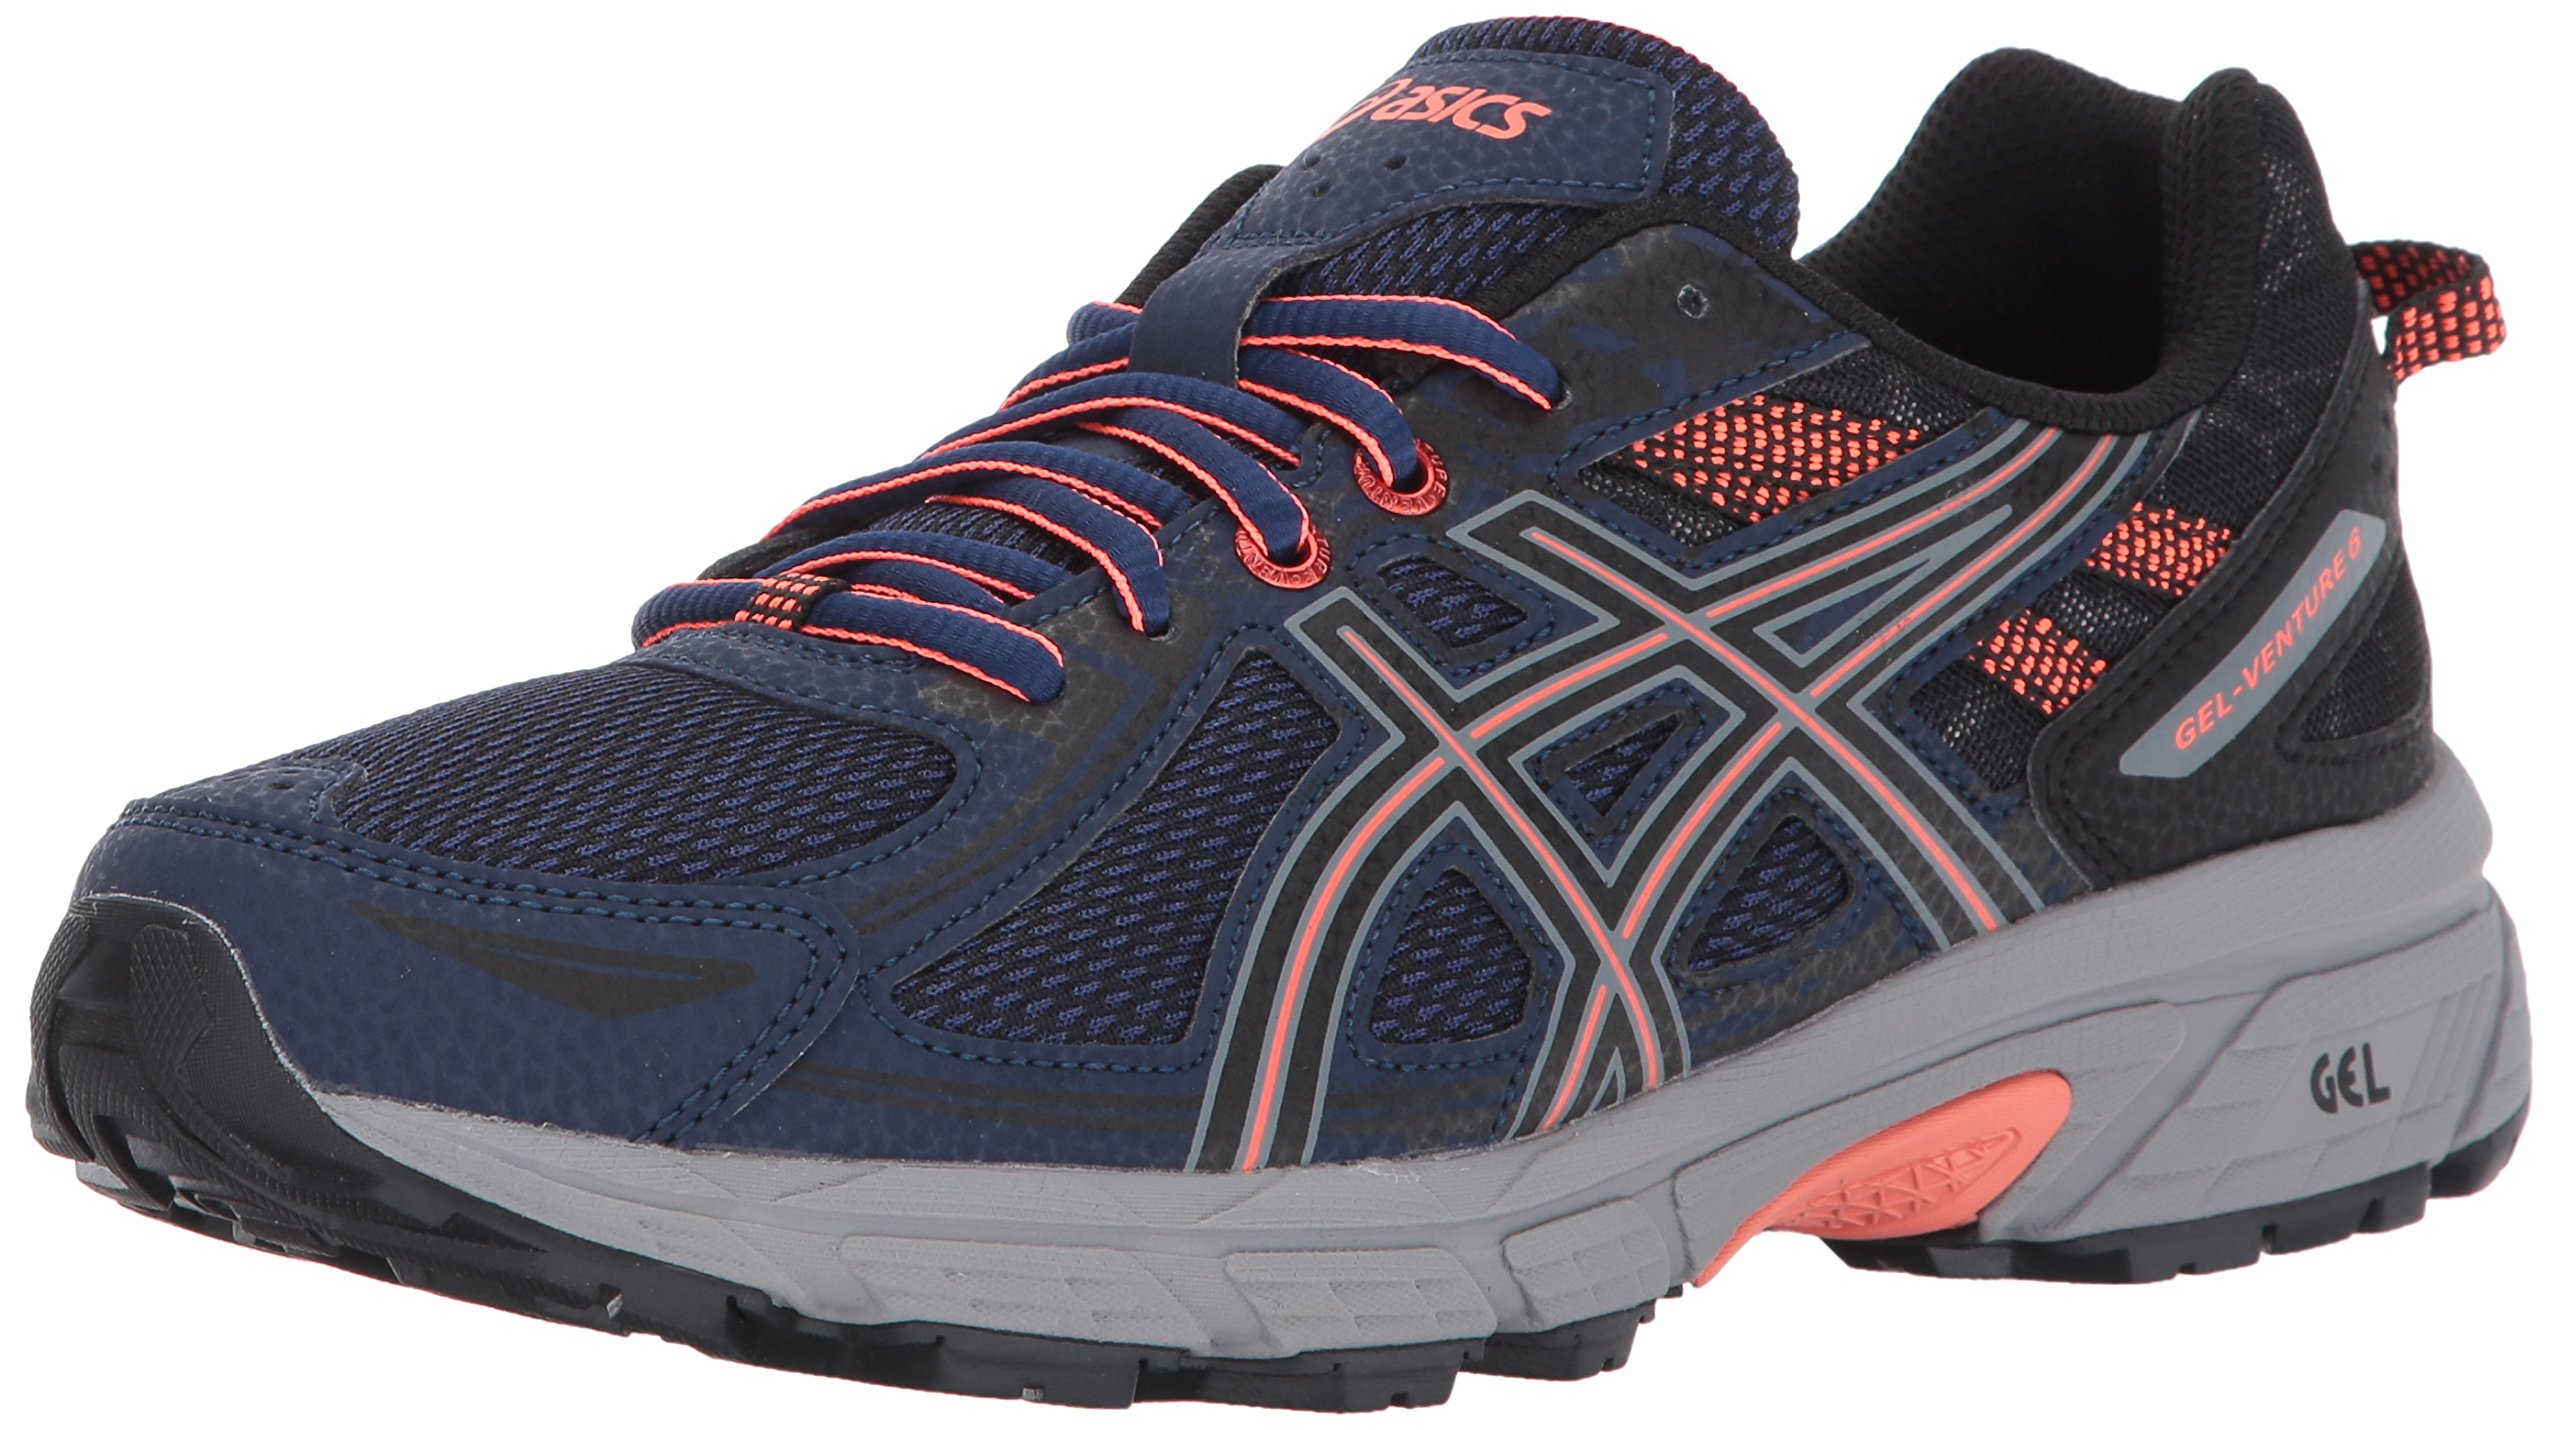 ASICS Women's Gel-Venture 6 Running-Shoes,Indigo Blue/Black/Coral,7.5 Medium US by ASICS